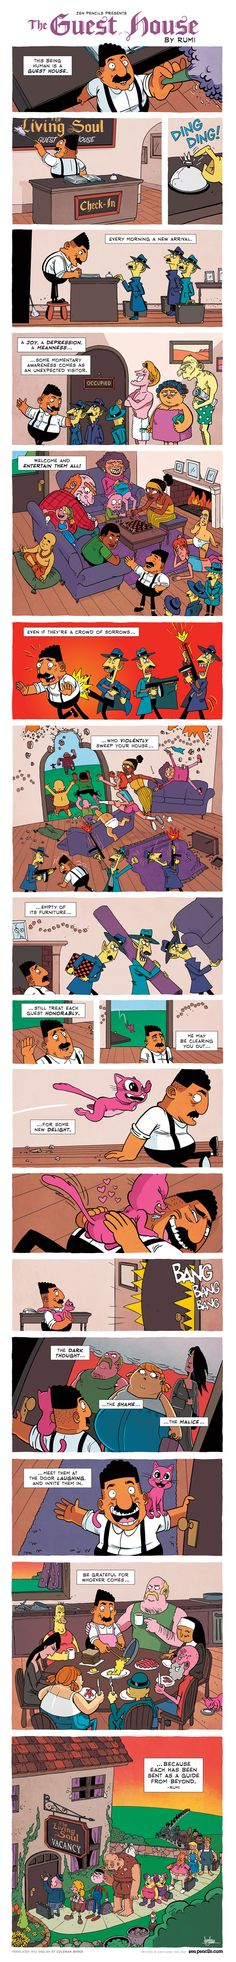 Zen Pencils -  by Gavin Aung Than March 28, 2016